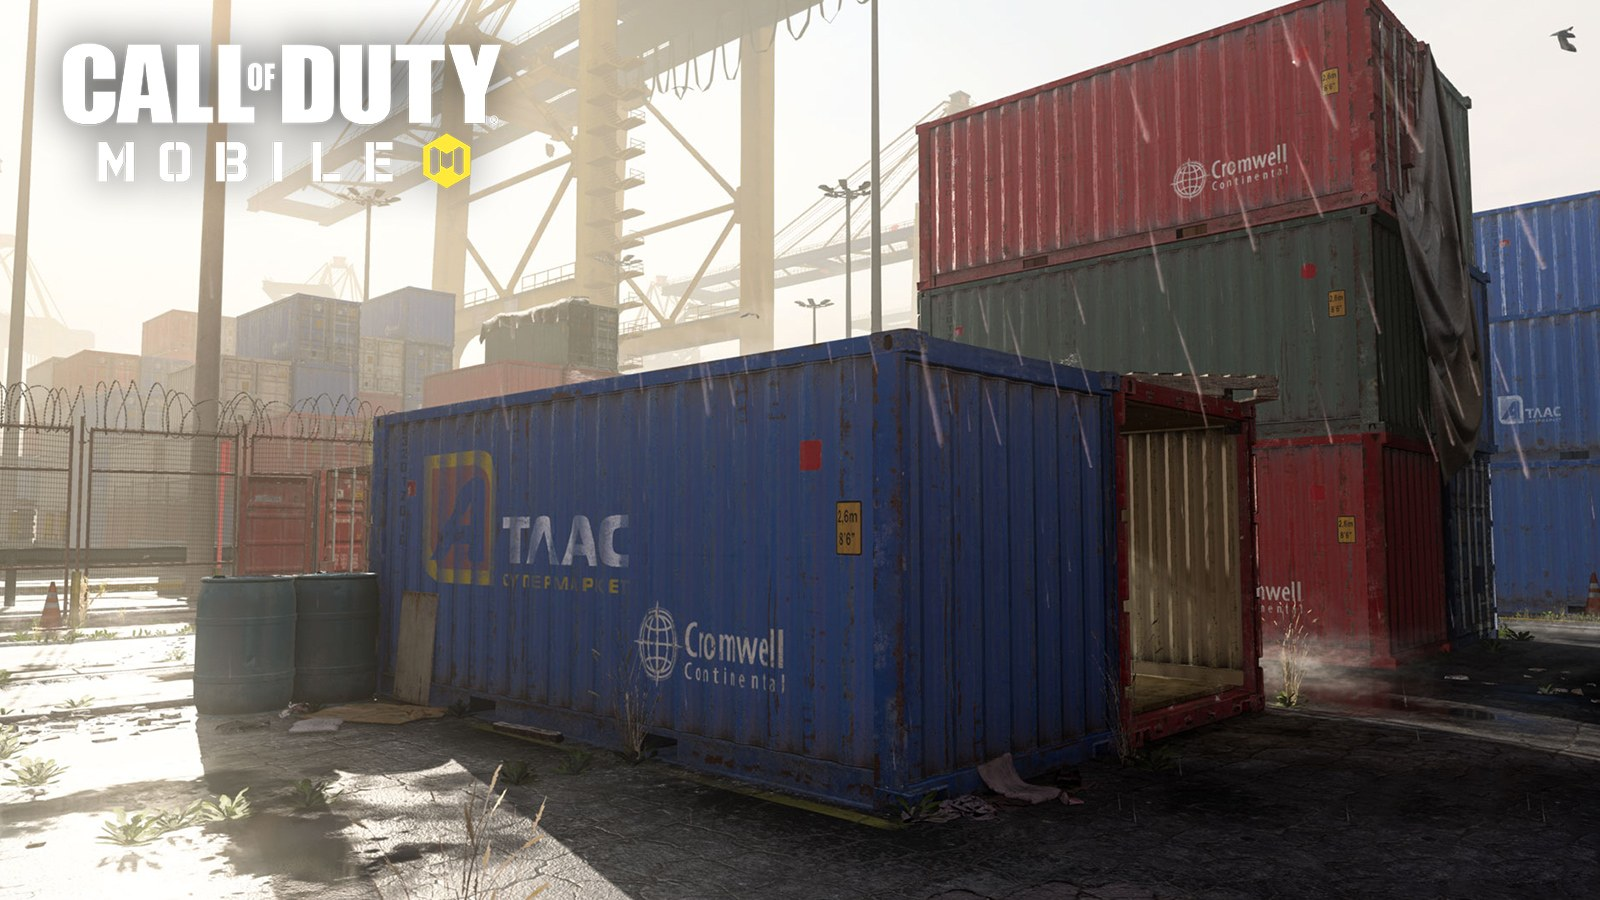 Shipment Call of Duty Mobile